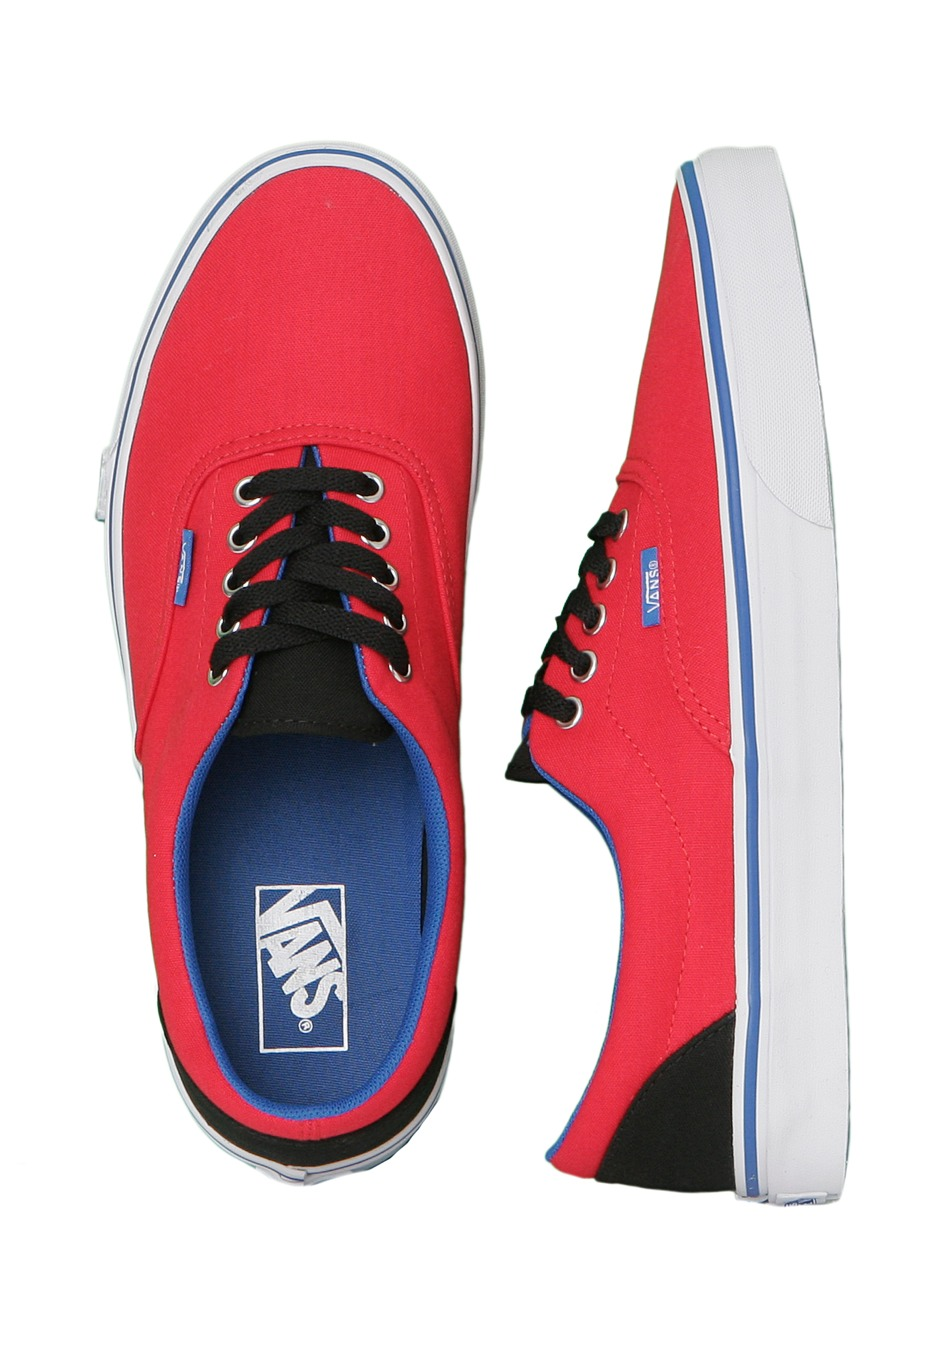 vans shoes blue and red